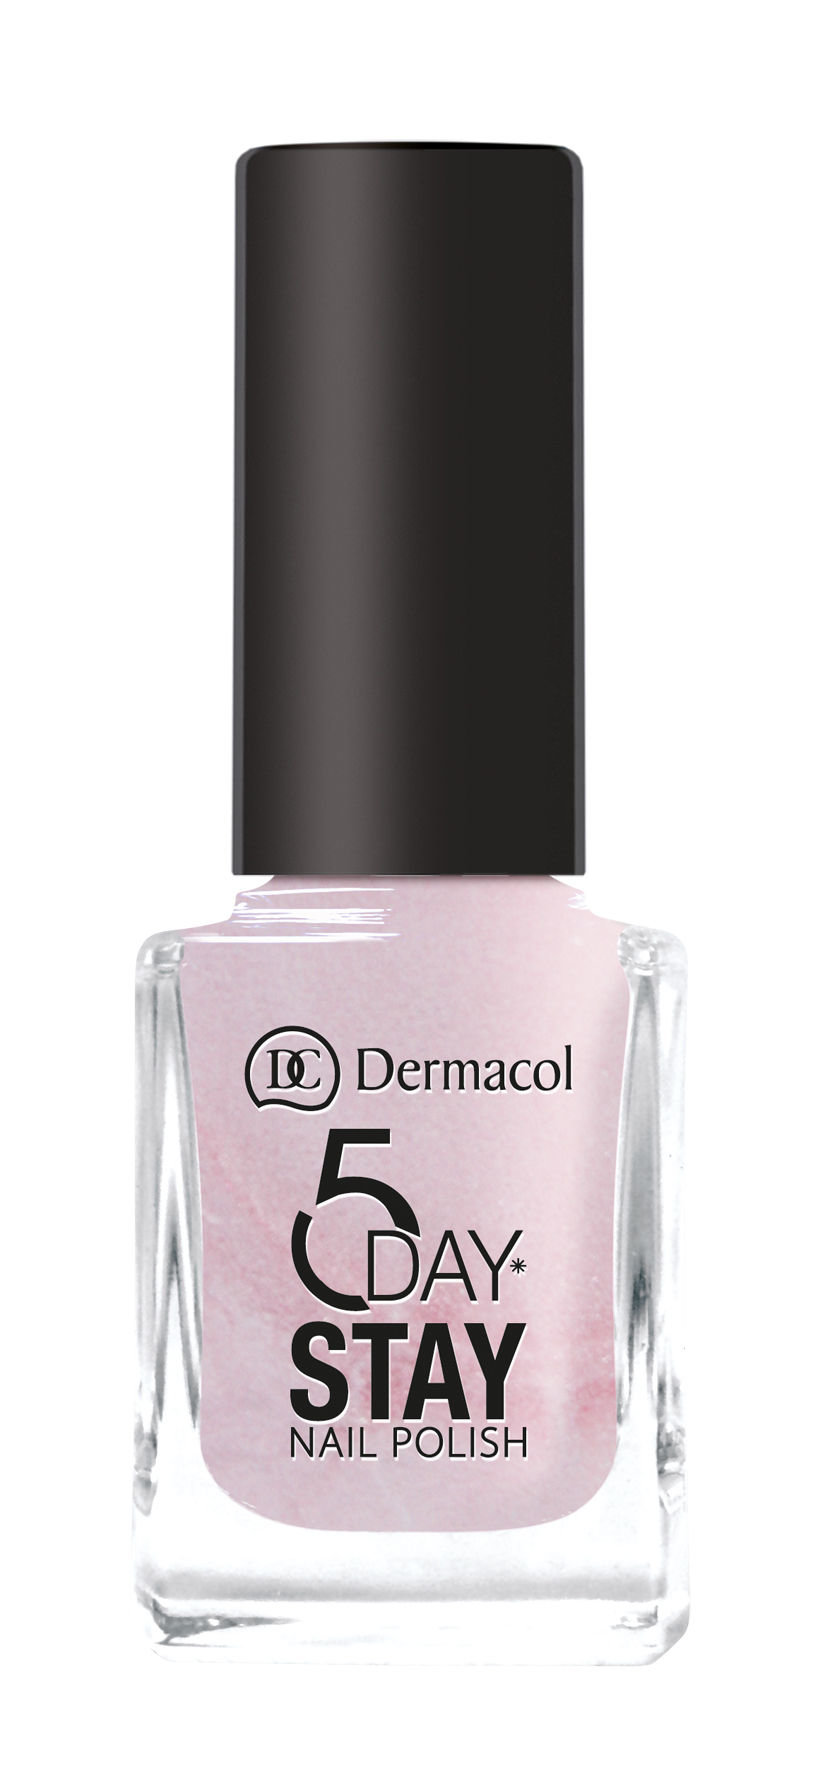 Dermacol 5 Day Stay Cosmetic 11ml 02 Sugar Sweet